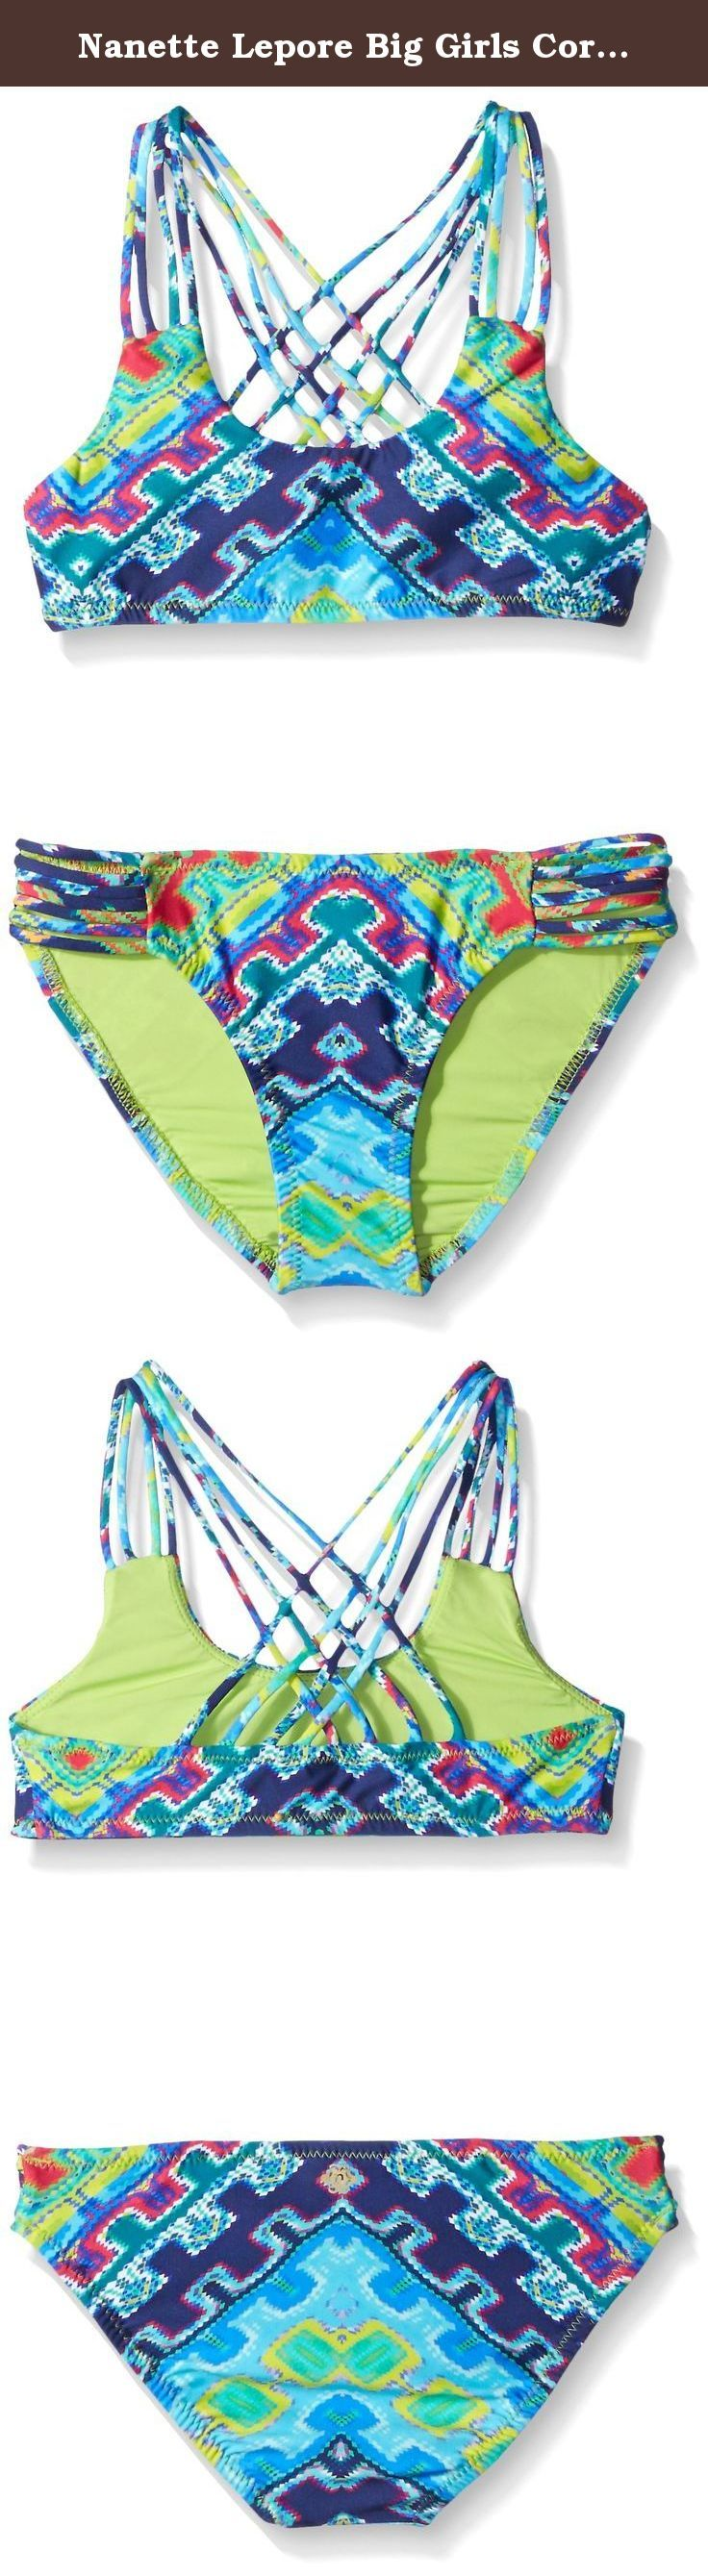 Nanette Lepore Big Girls Coral Reef Bralette Back Detail Wit Strappy Hipster, Multi, 7. Tween sized teenager sets teen swim swimsuits swimming pool beach favorite suit girl girls top and bottom ropa traje de bano swimsuit number 1 best fav de la mar.